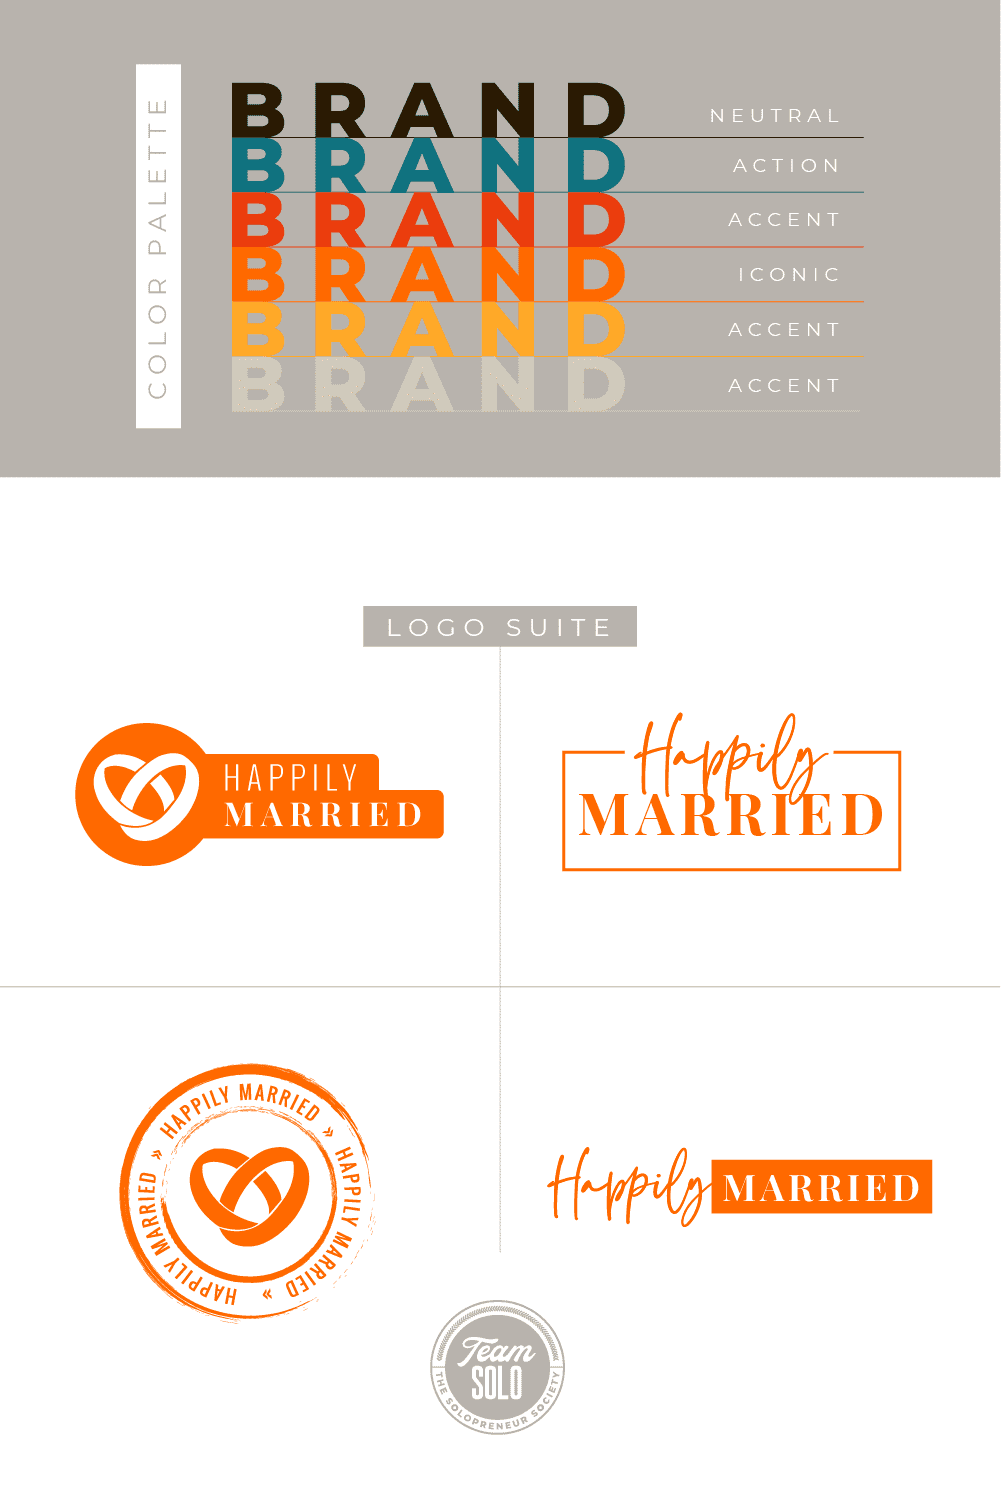 Happily Married Brand Identity Design